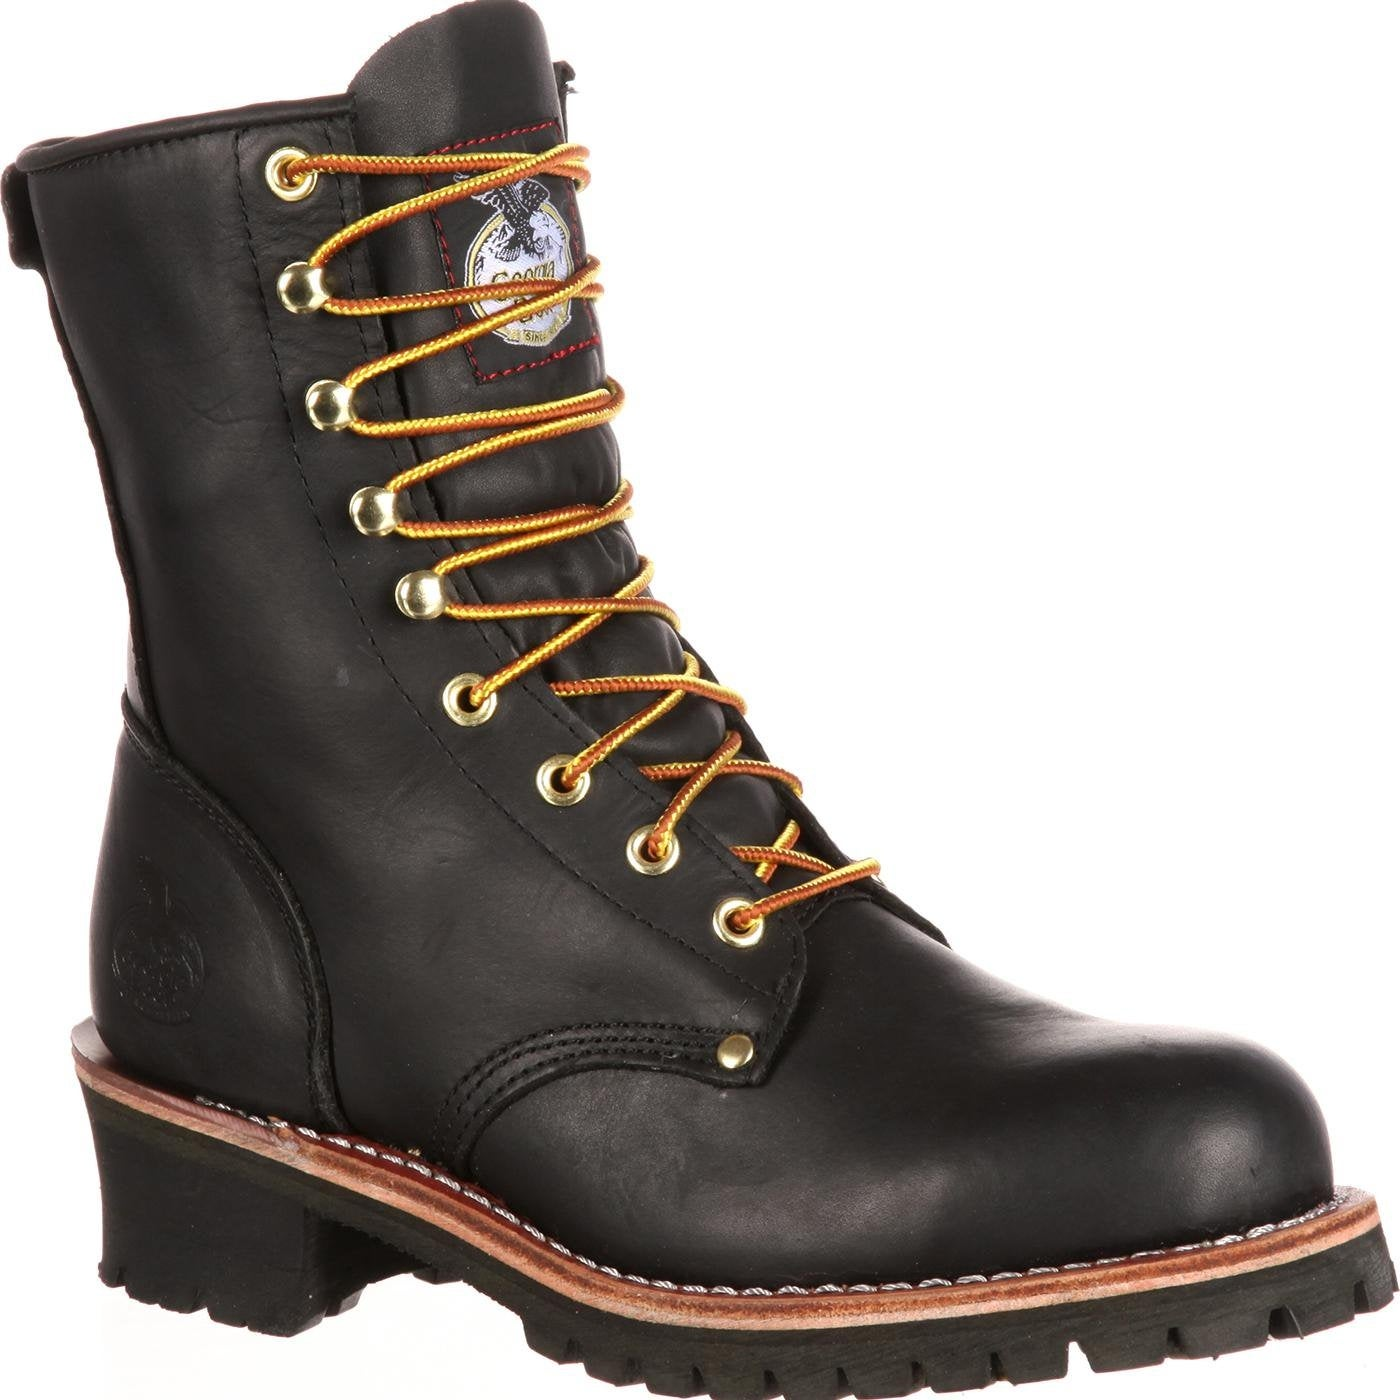 Black Logger Work Boots - Style #G8120